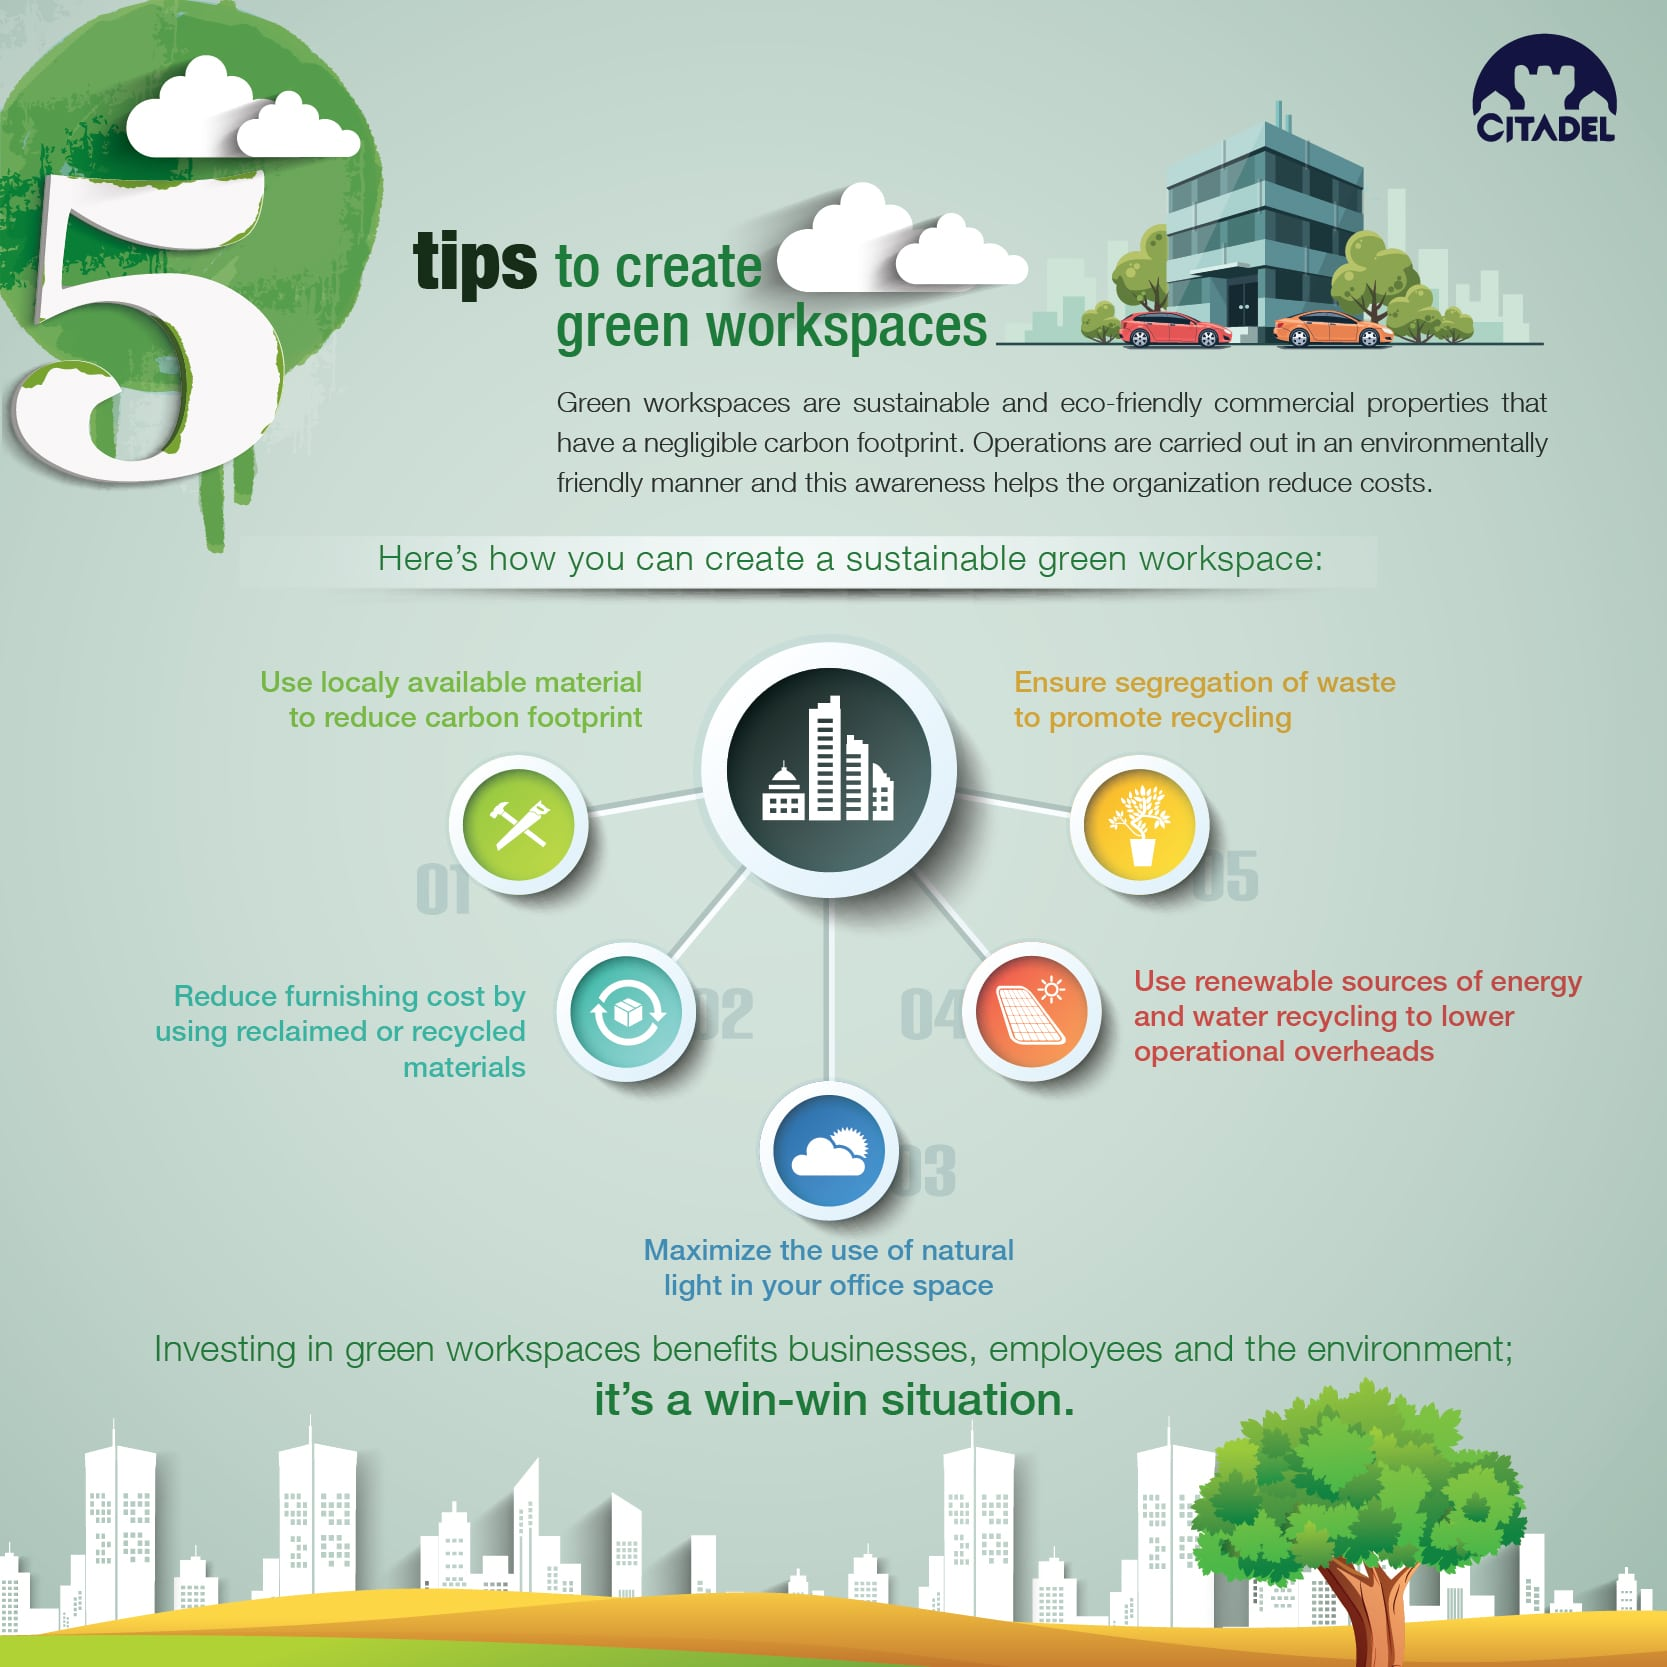 5 tips to create green workspaces-infographic